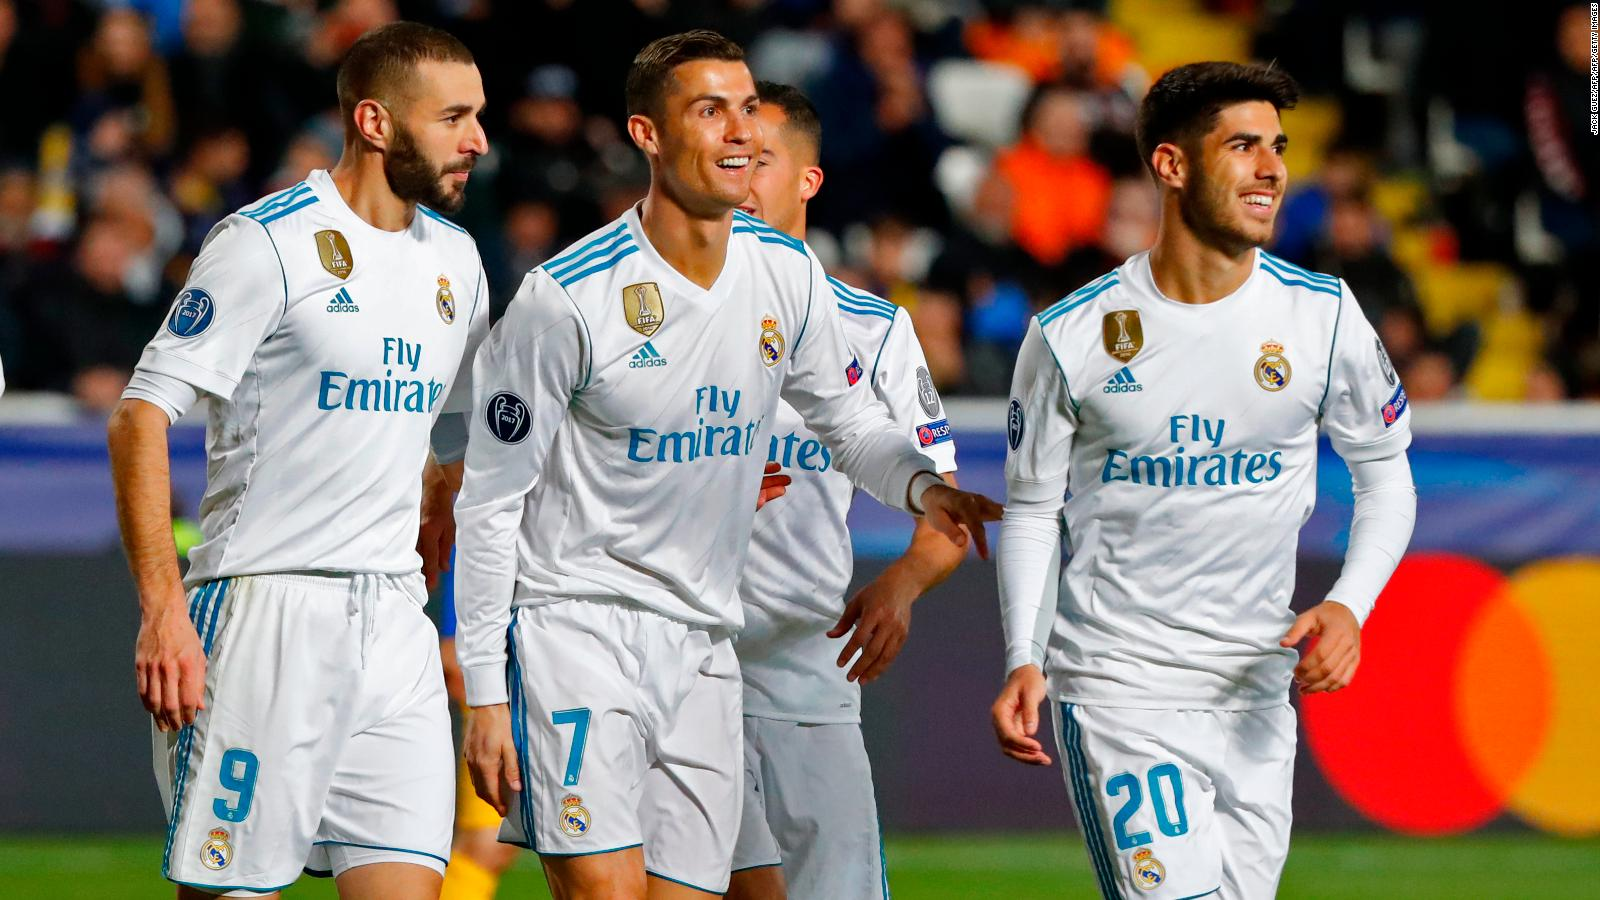 I would have preferred it to be manchester united but liverpool cristiano ronaldo is preparing to lead real madrid stopboris Images